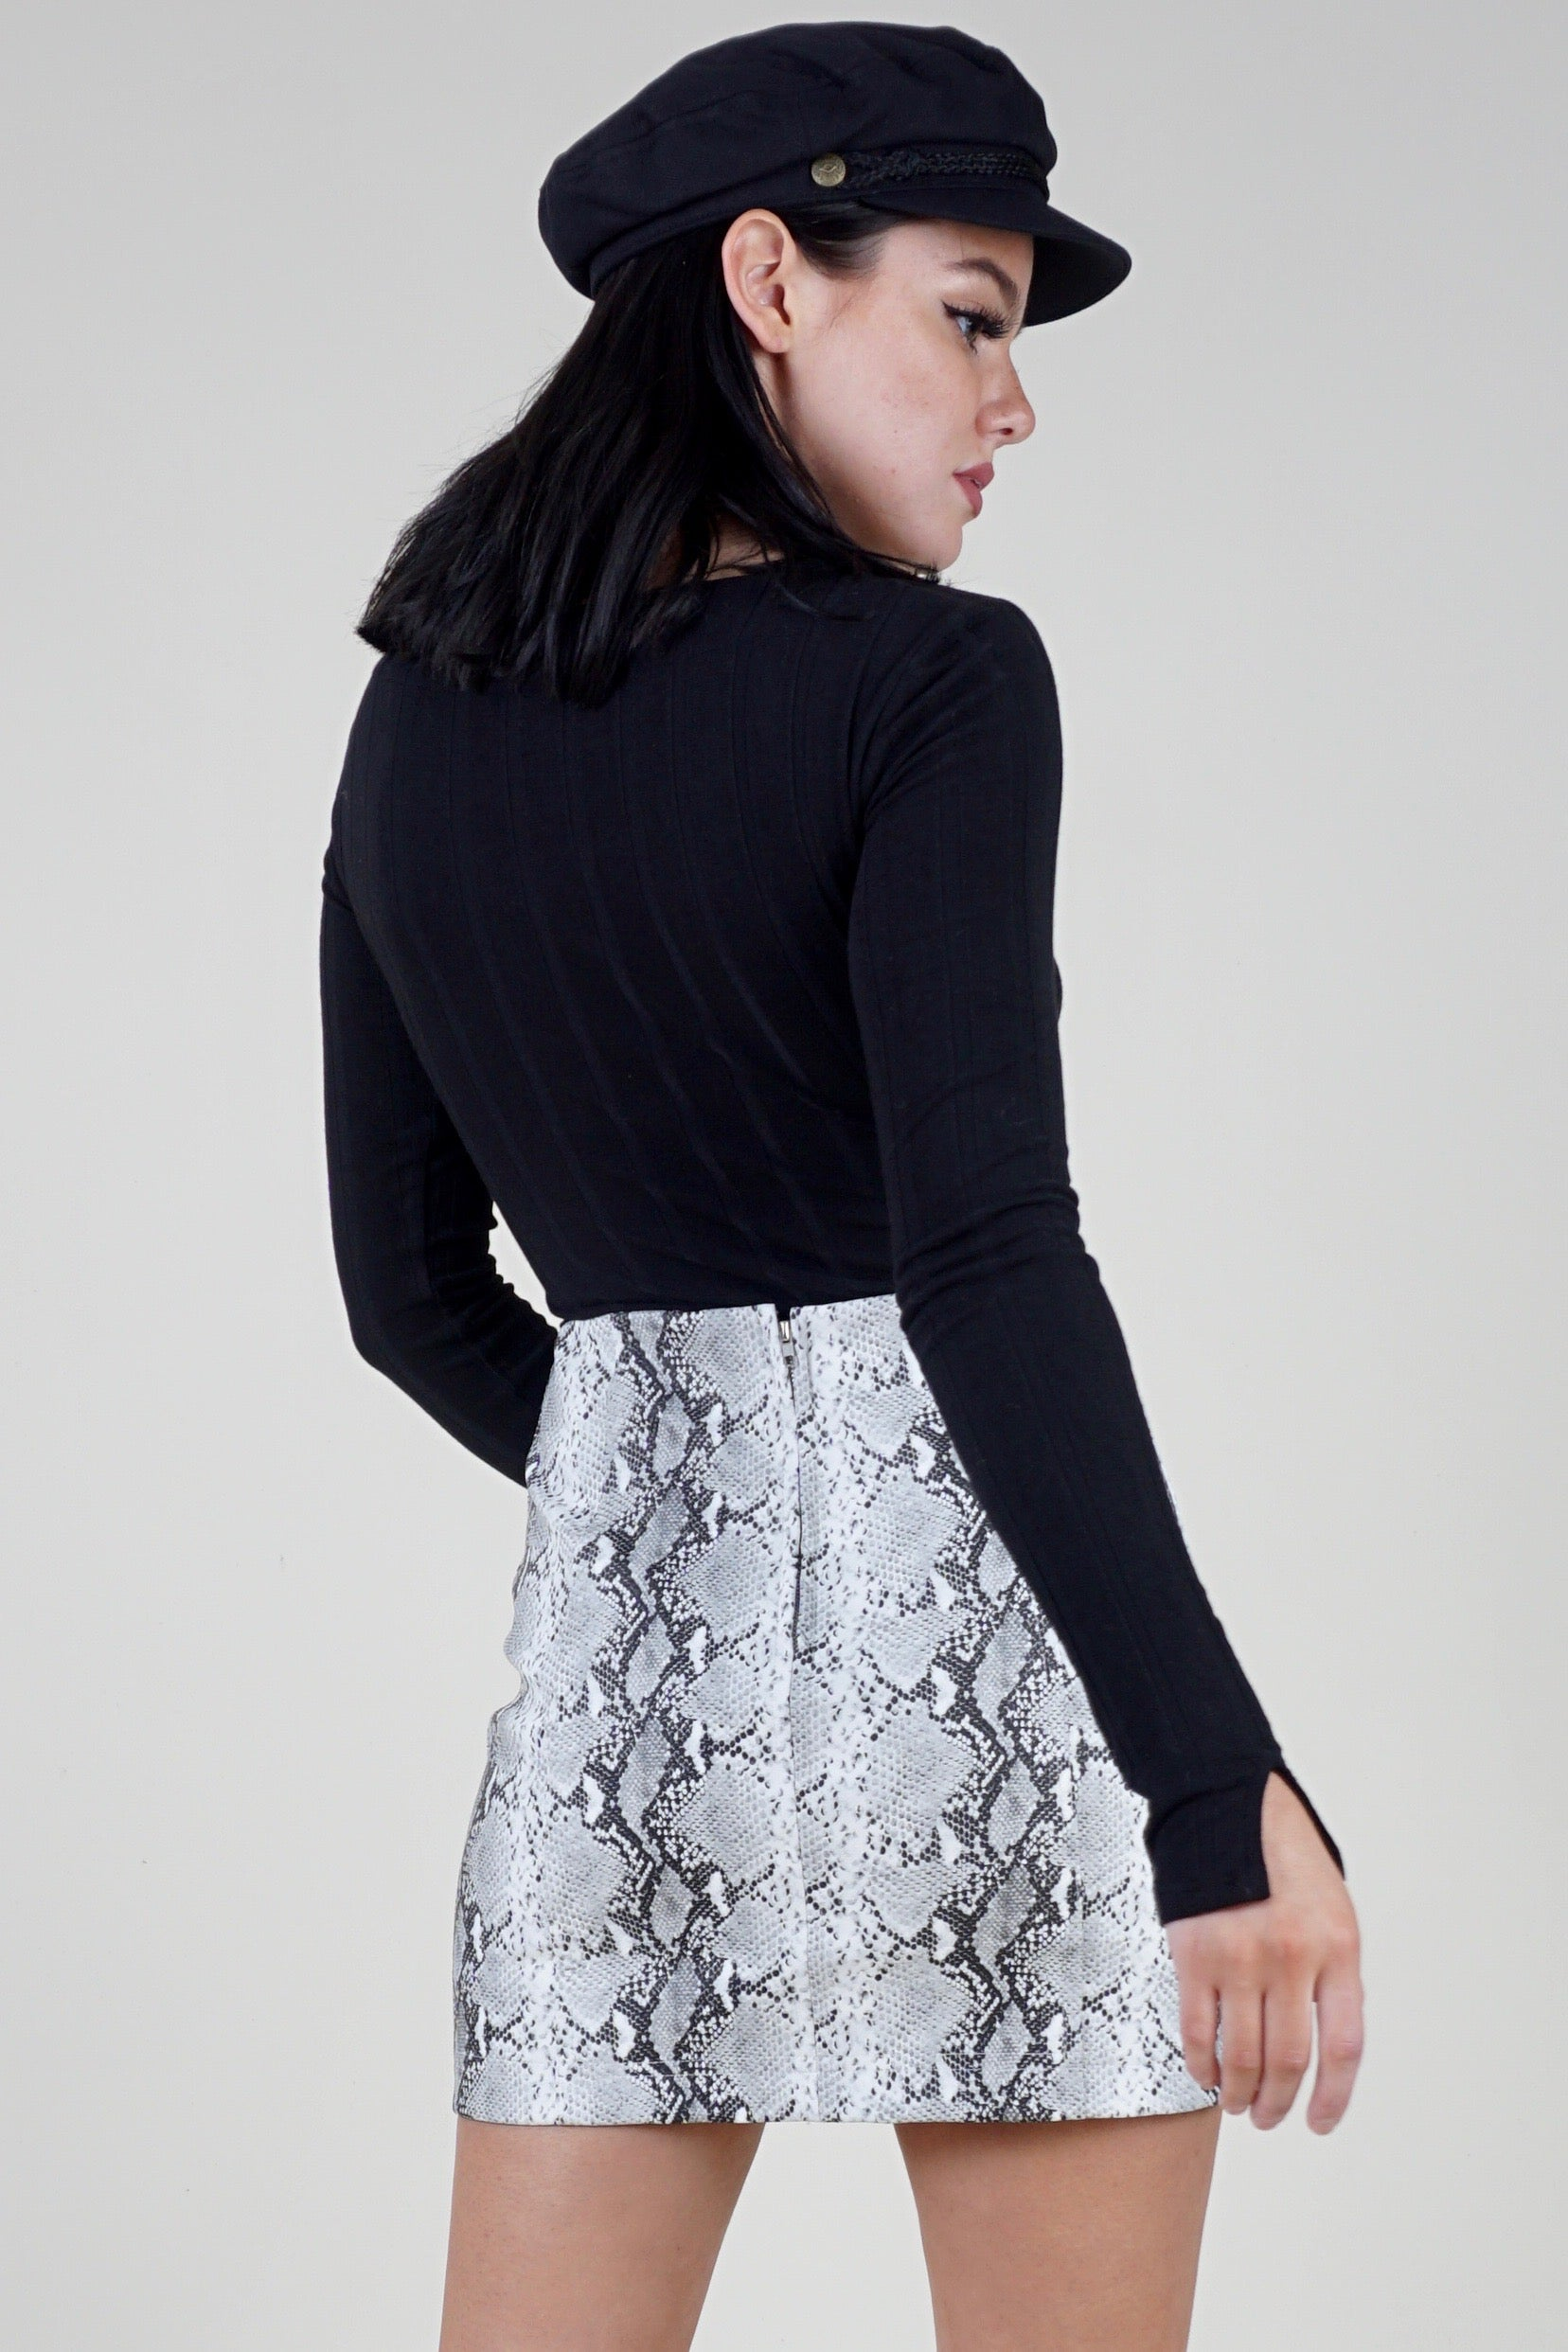 Snake Charmer Mini Skirt - Grey